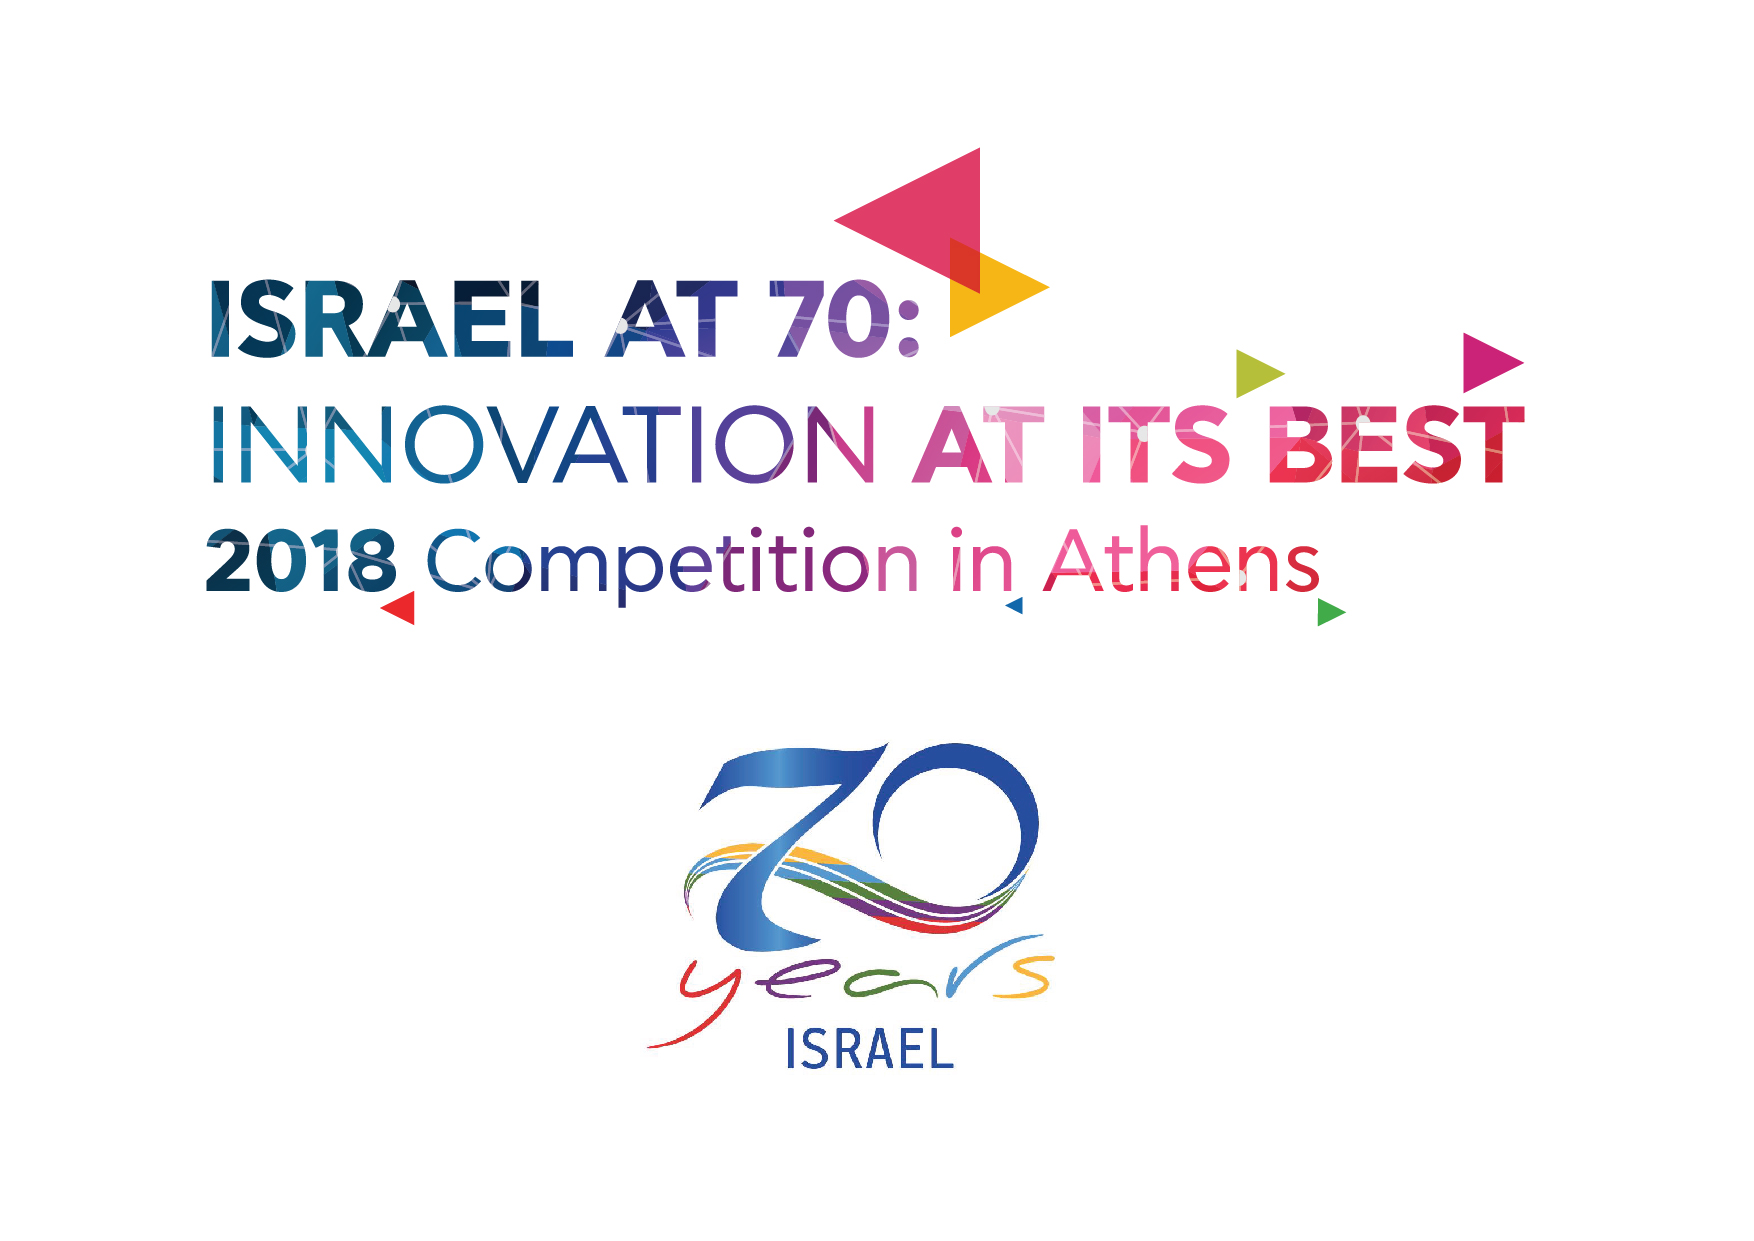 ISRAEL ΑΤ 70: INNOVATION AT ITS BEST